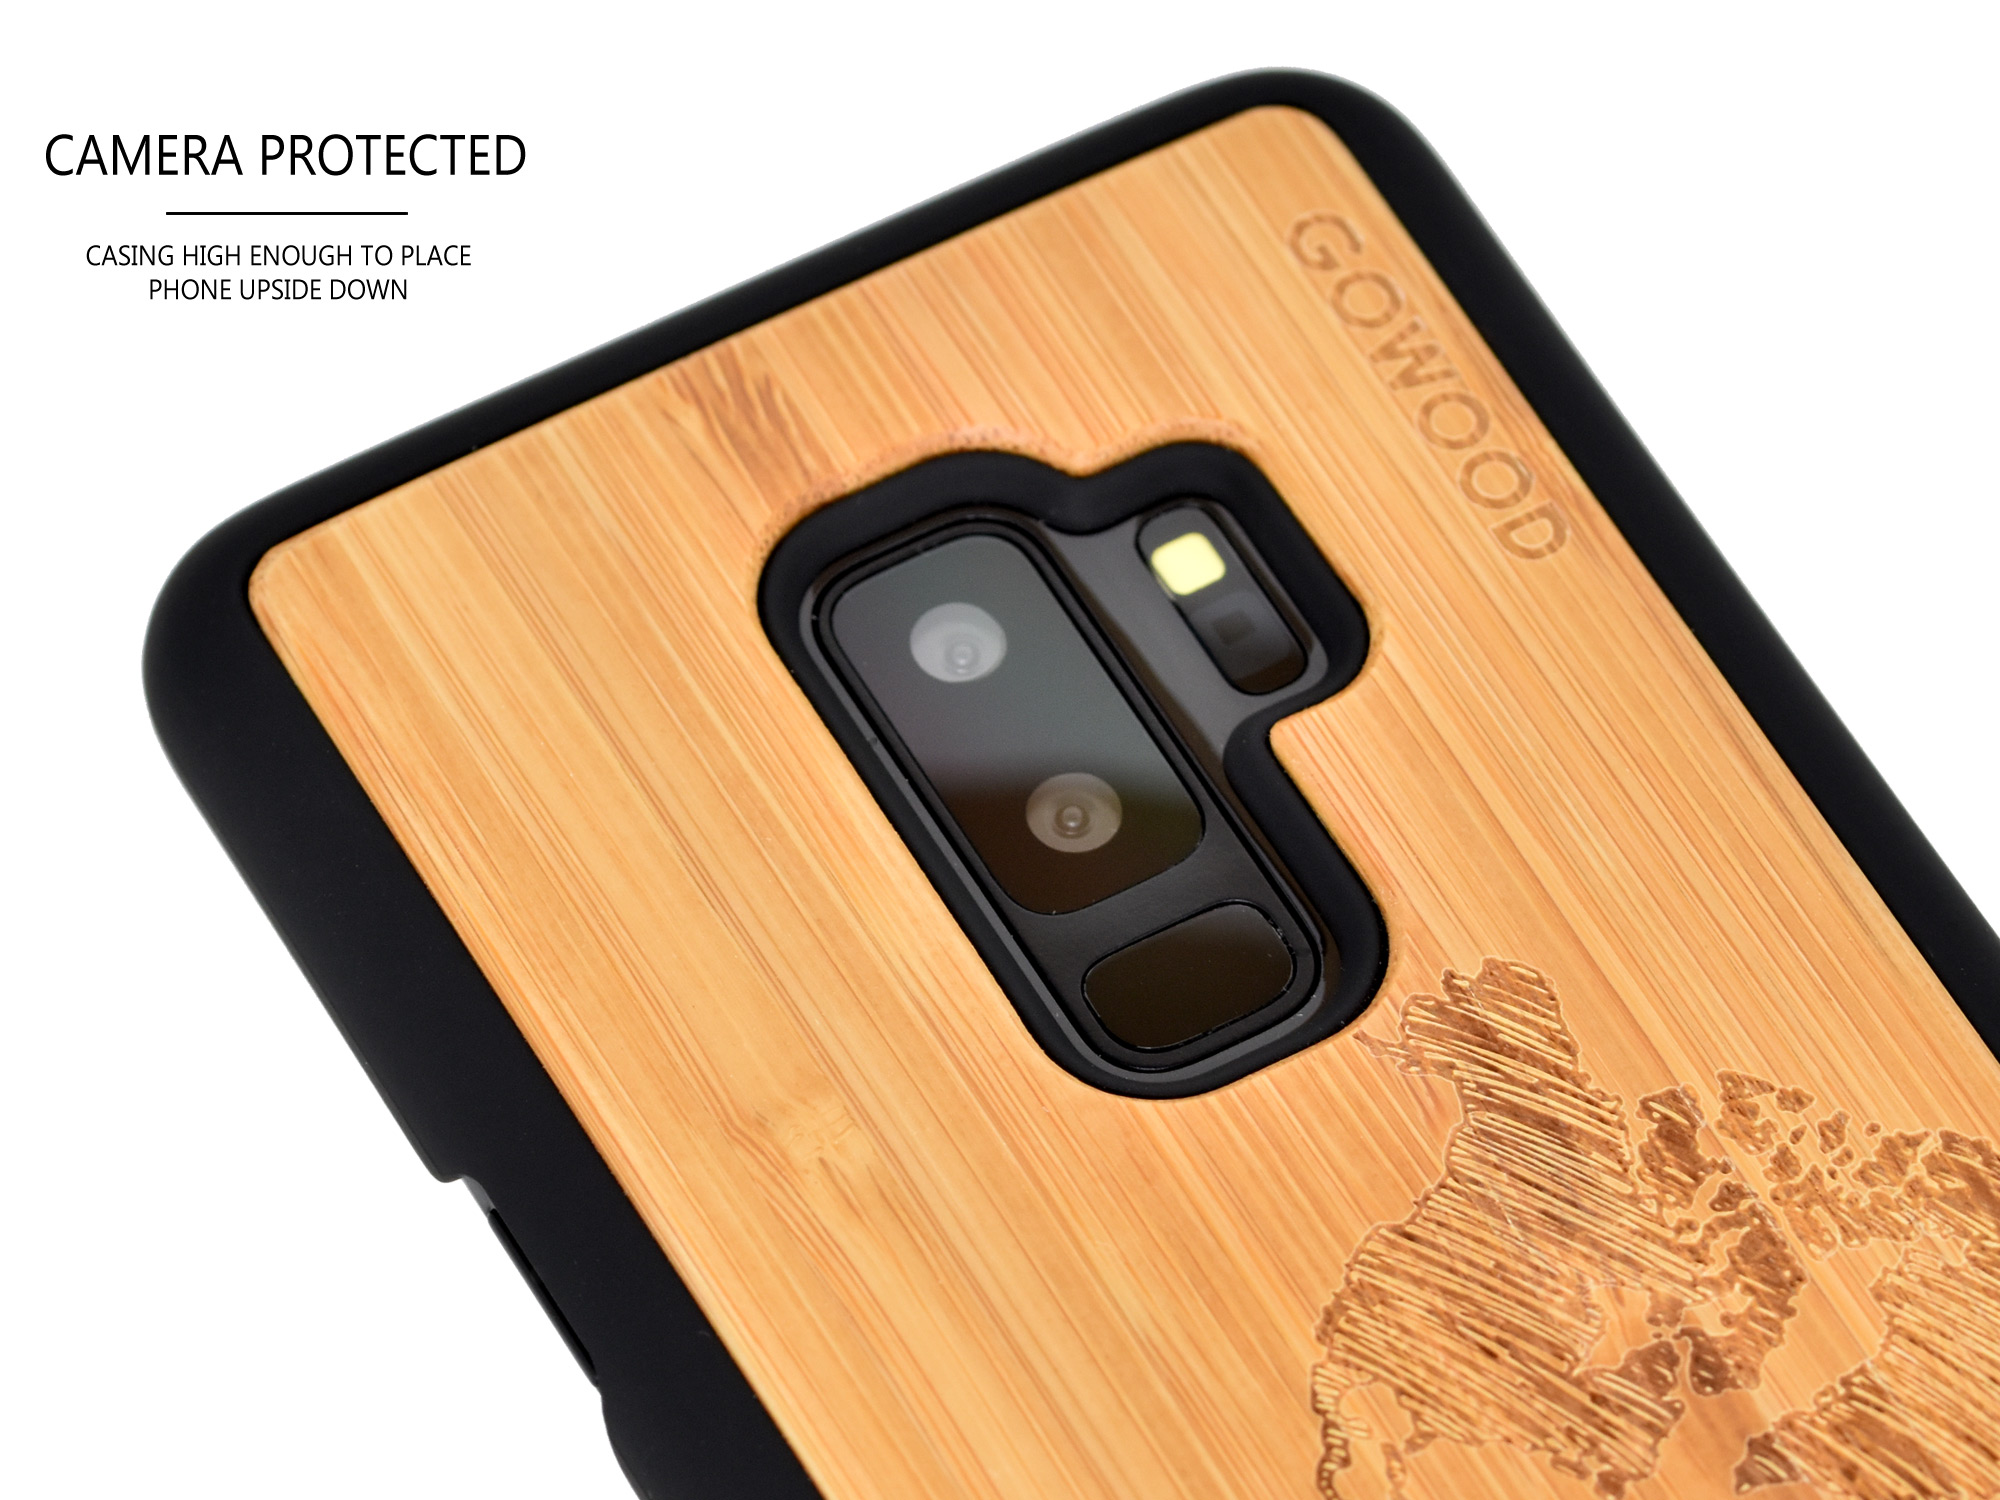 Samsung Galaxy S9 Plus wood case bamboo world map